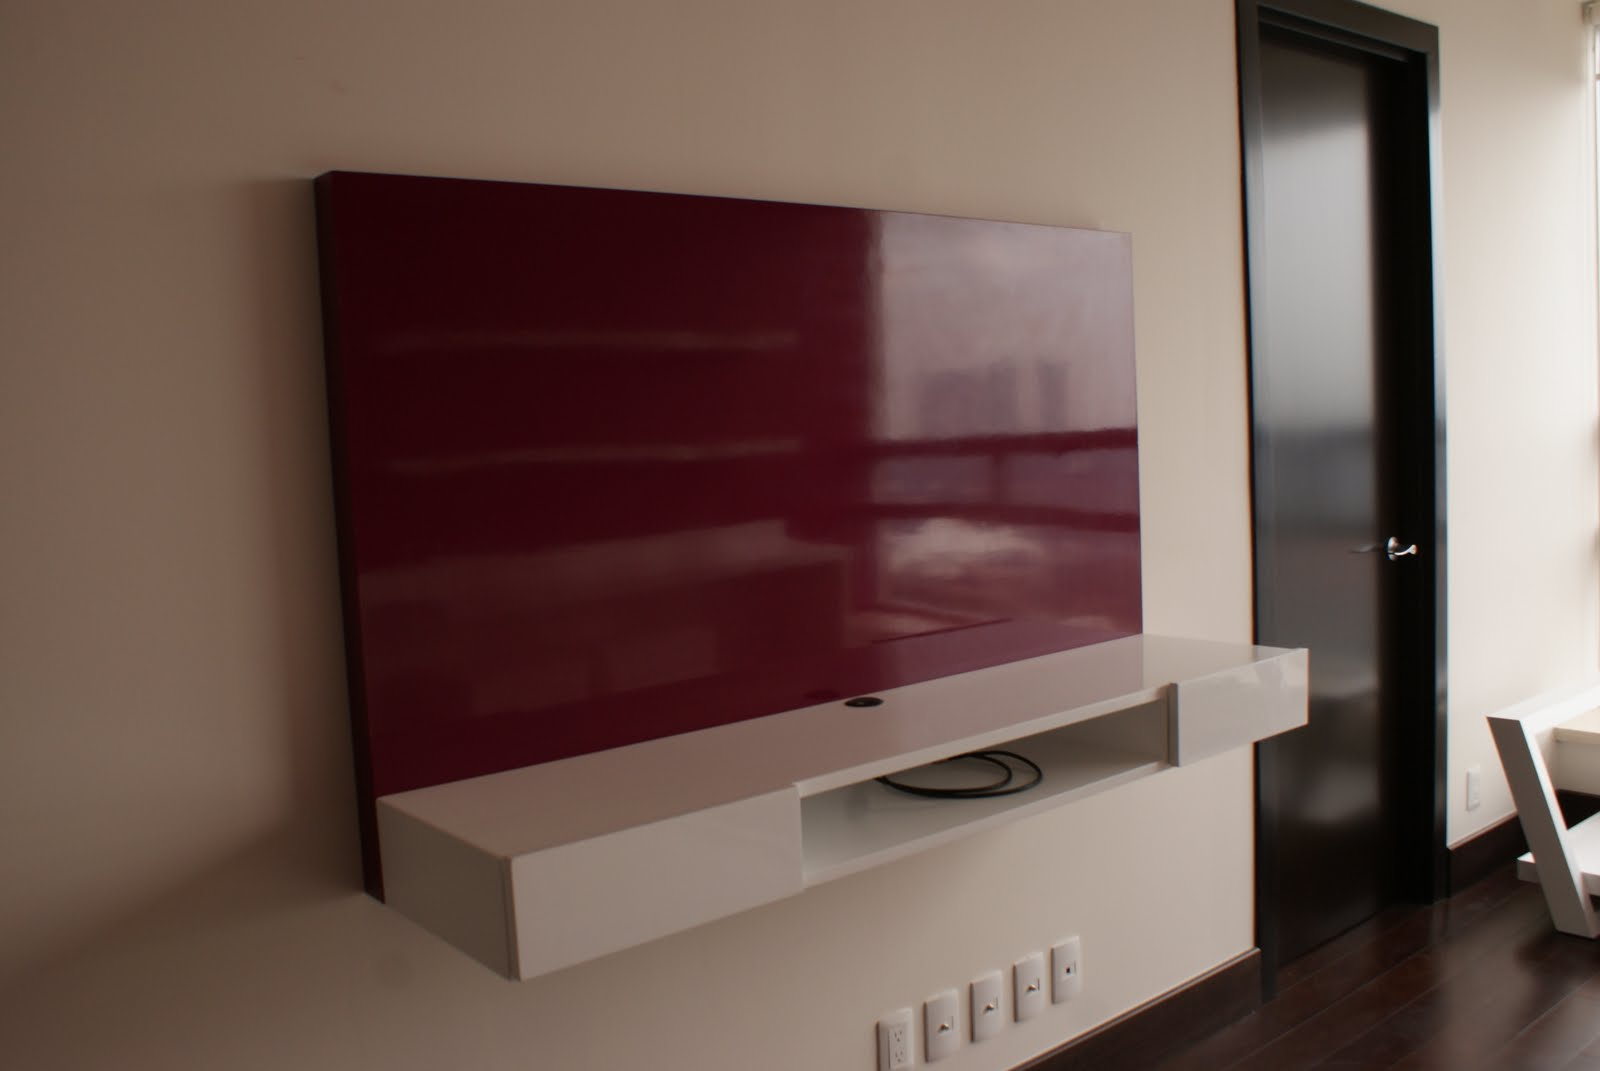 Muebles Tv Colgados Colgar Tv Base De Apoyo Tv Lcd Led Impecable Estado